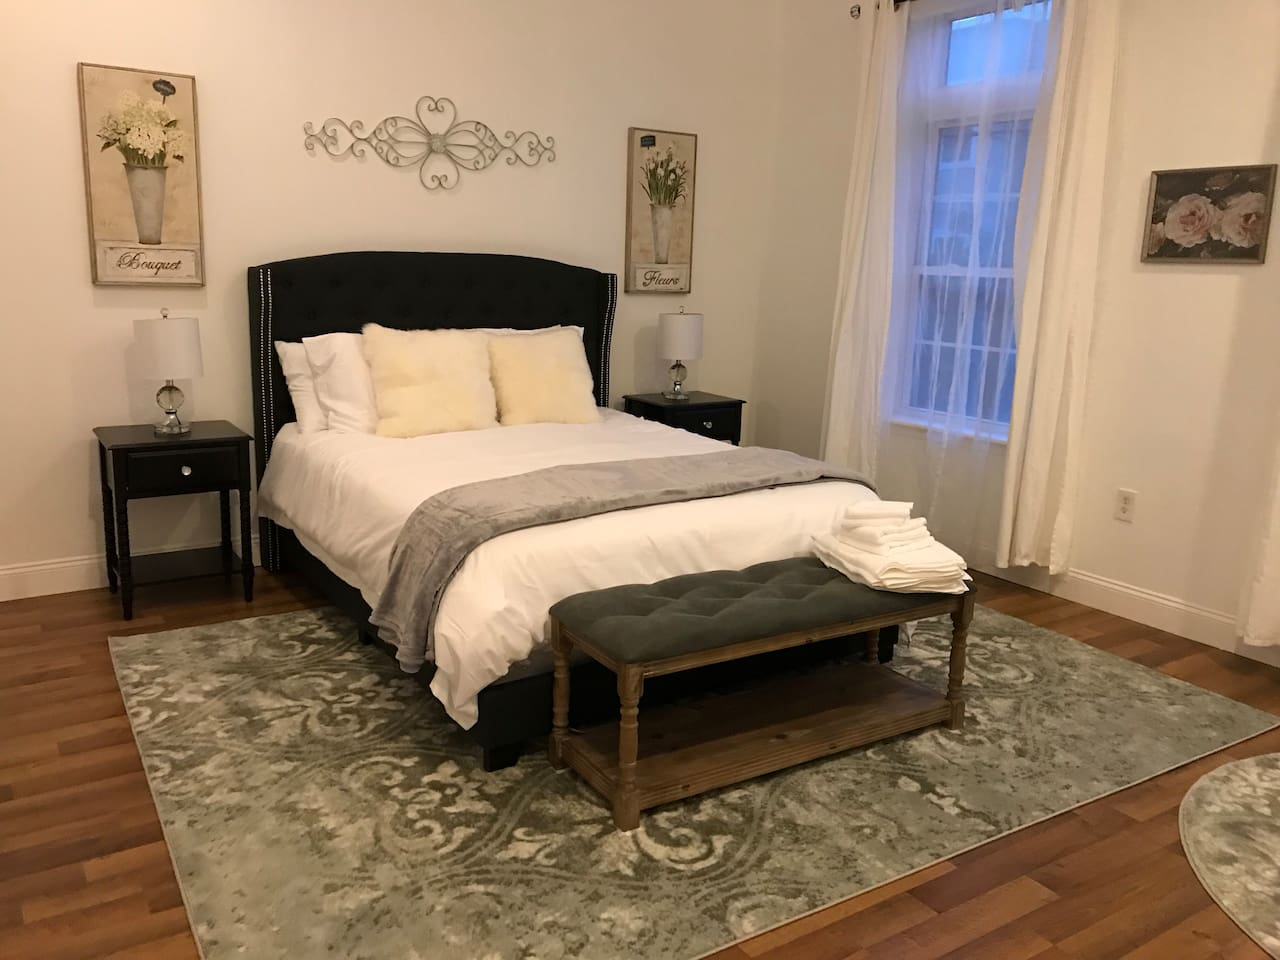 Private room with a queen bed.